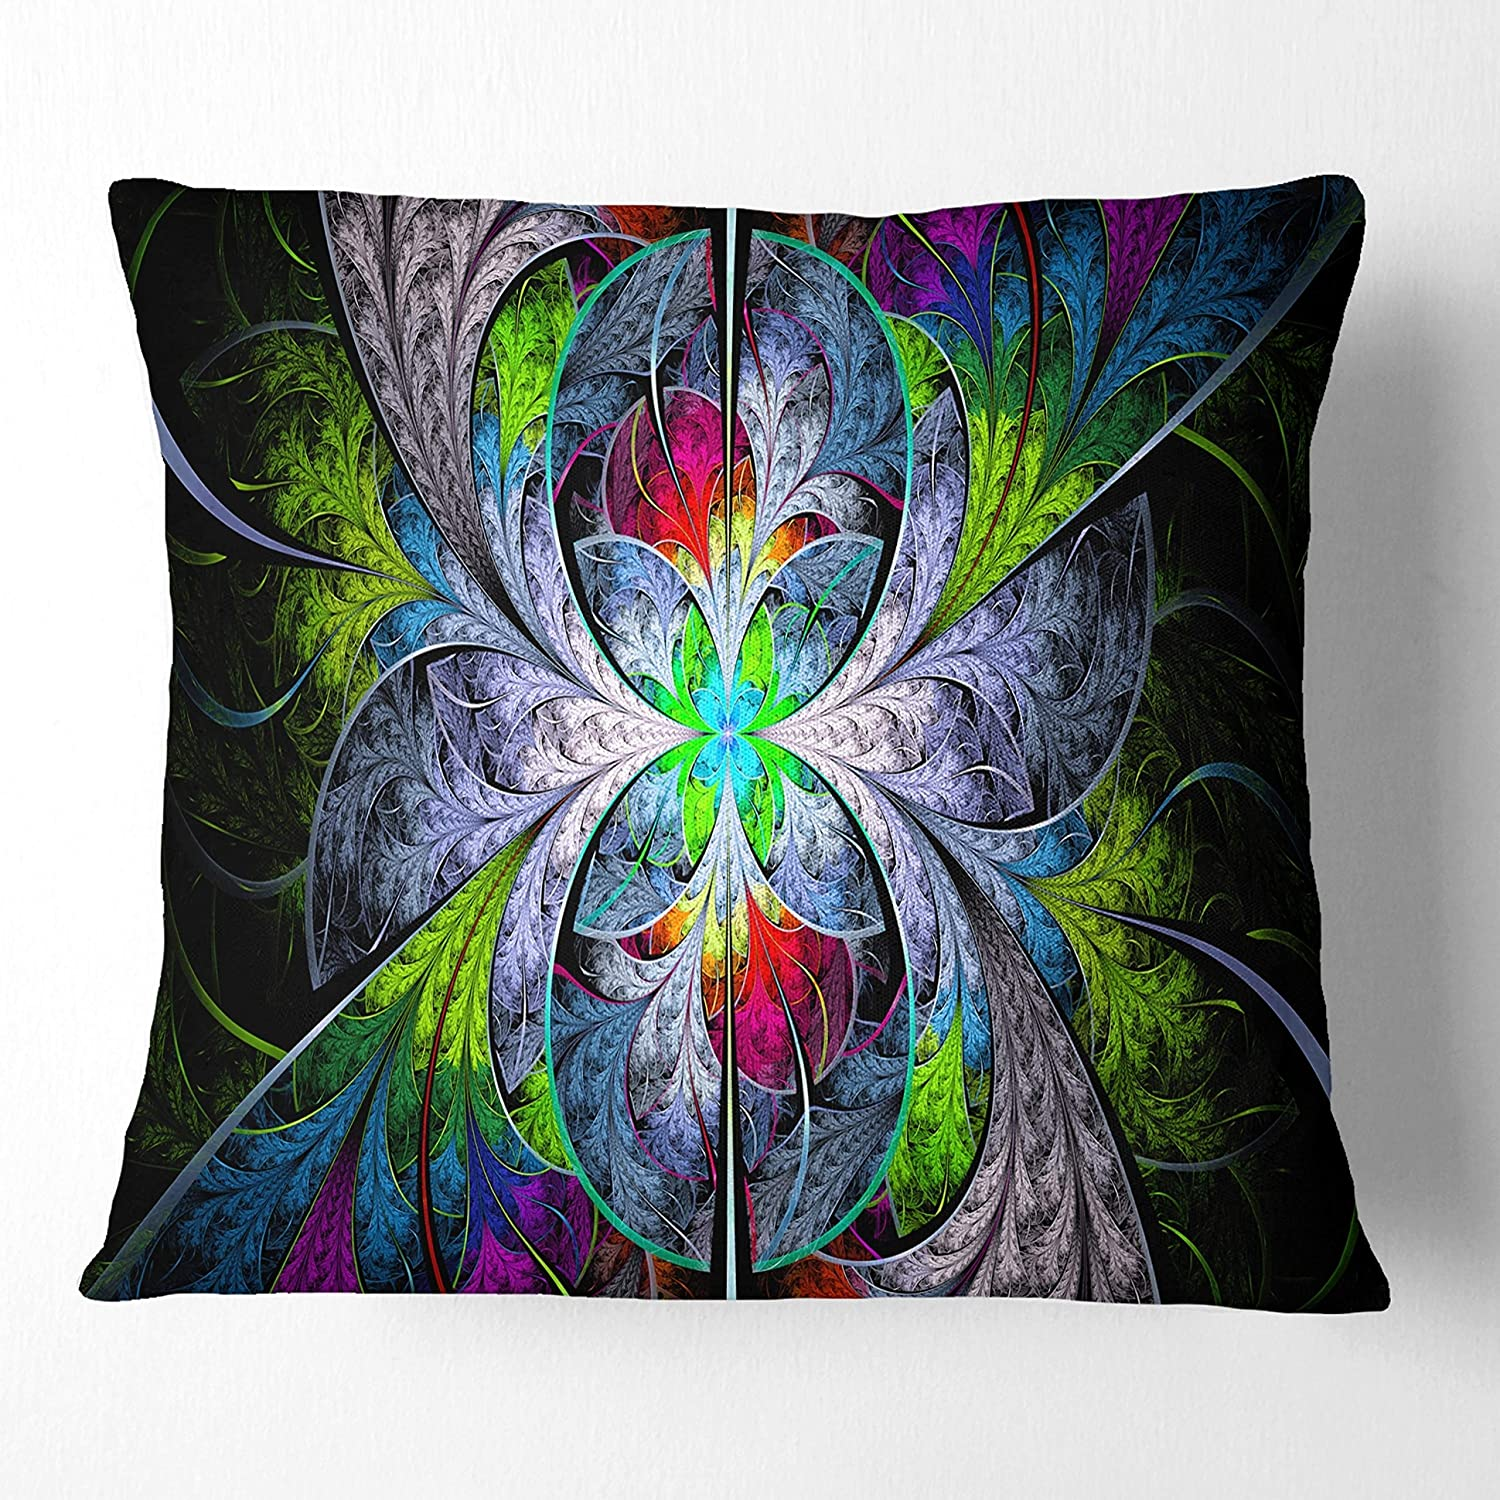 Designart CU15854-26-26 Multi Color Fractal Stained Glass' Abstract Cushion Cover for Living Room, Sofa Throw Pillow 26 in. x 26 in. in